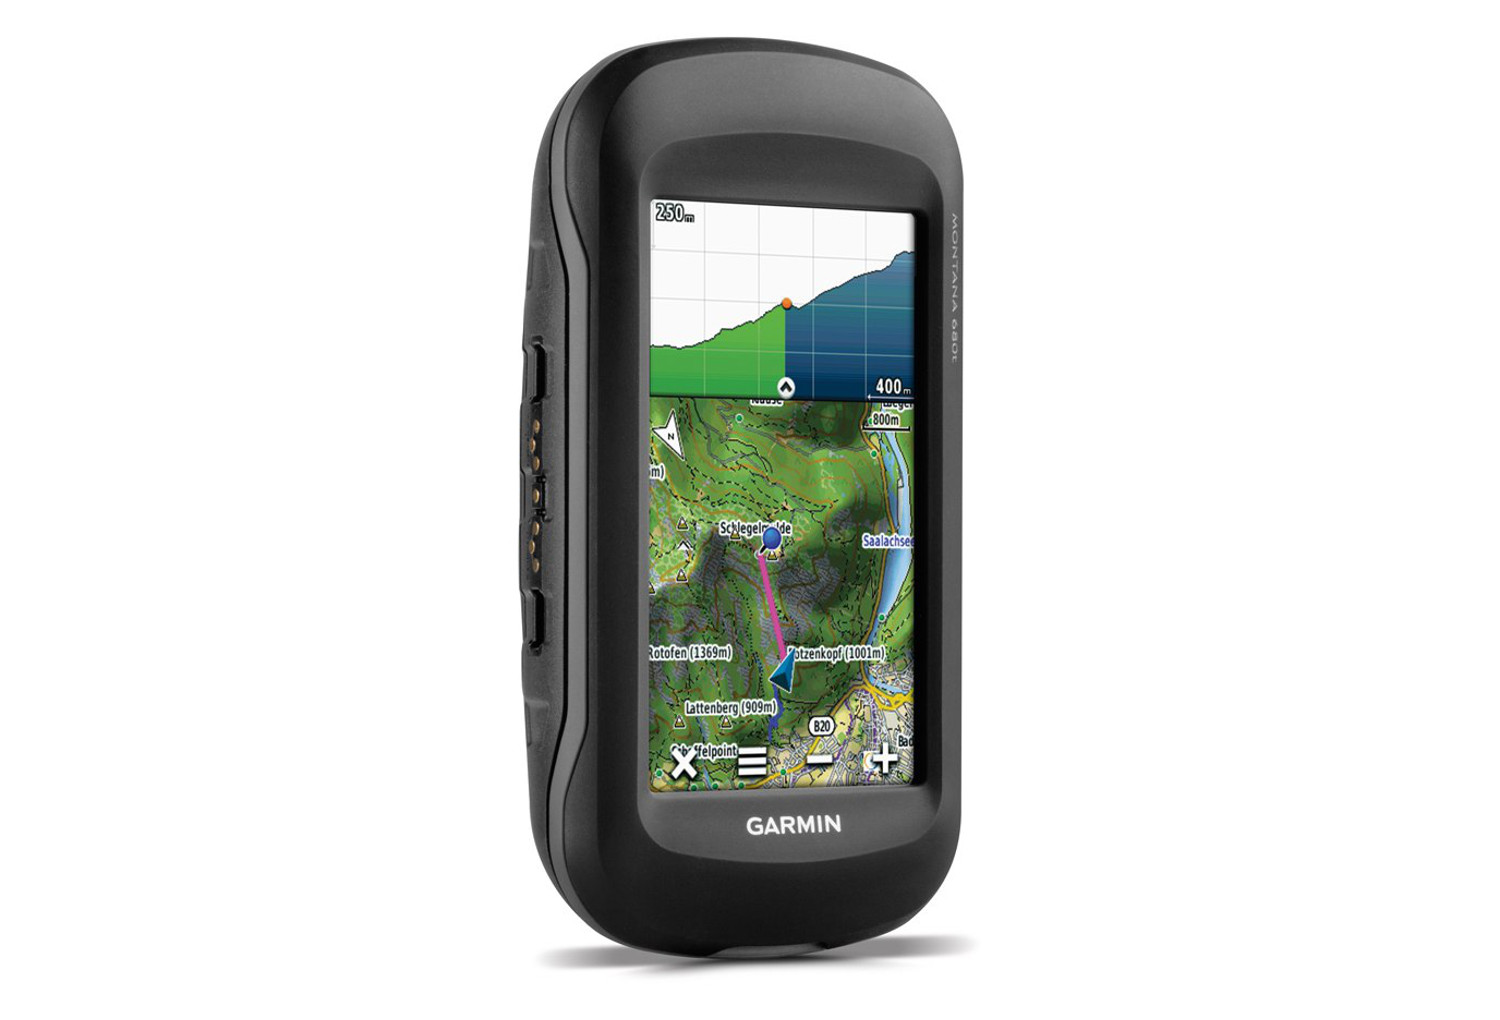 compteur gps garmin montana 680t carte europe loisir. Black Bedroom Furniture Sets. Home Design Ideas